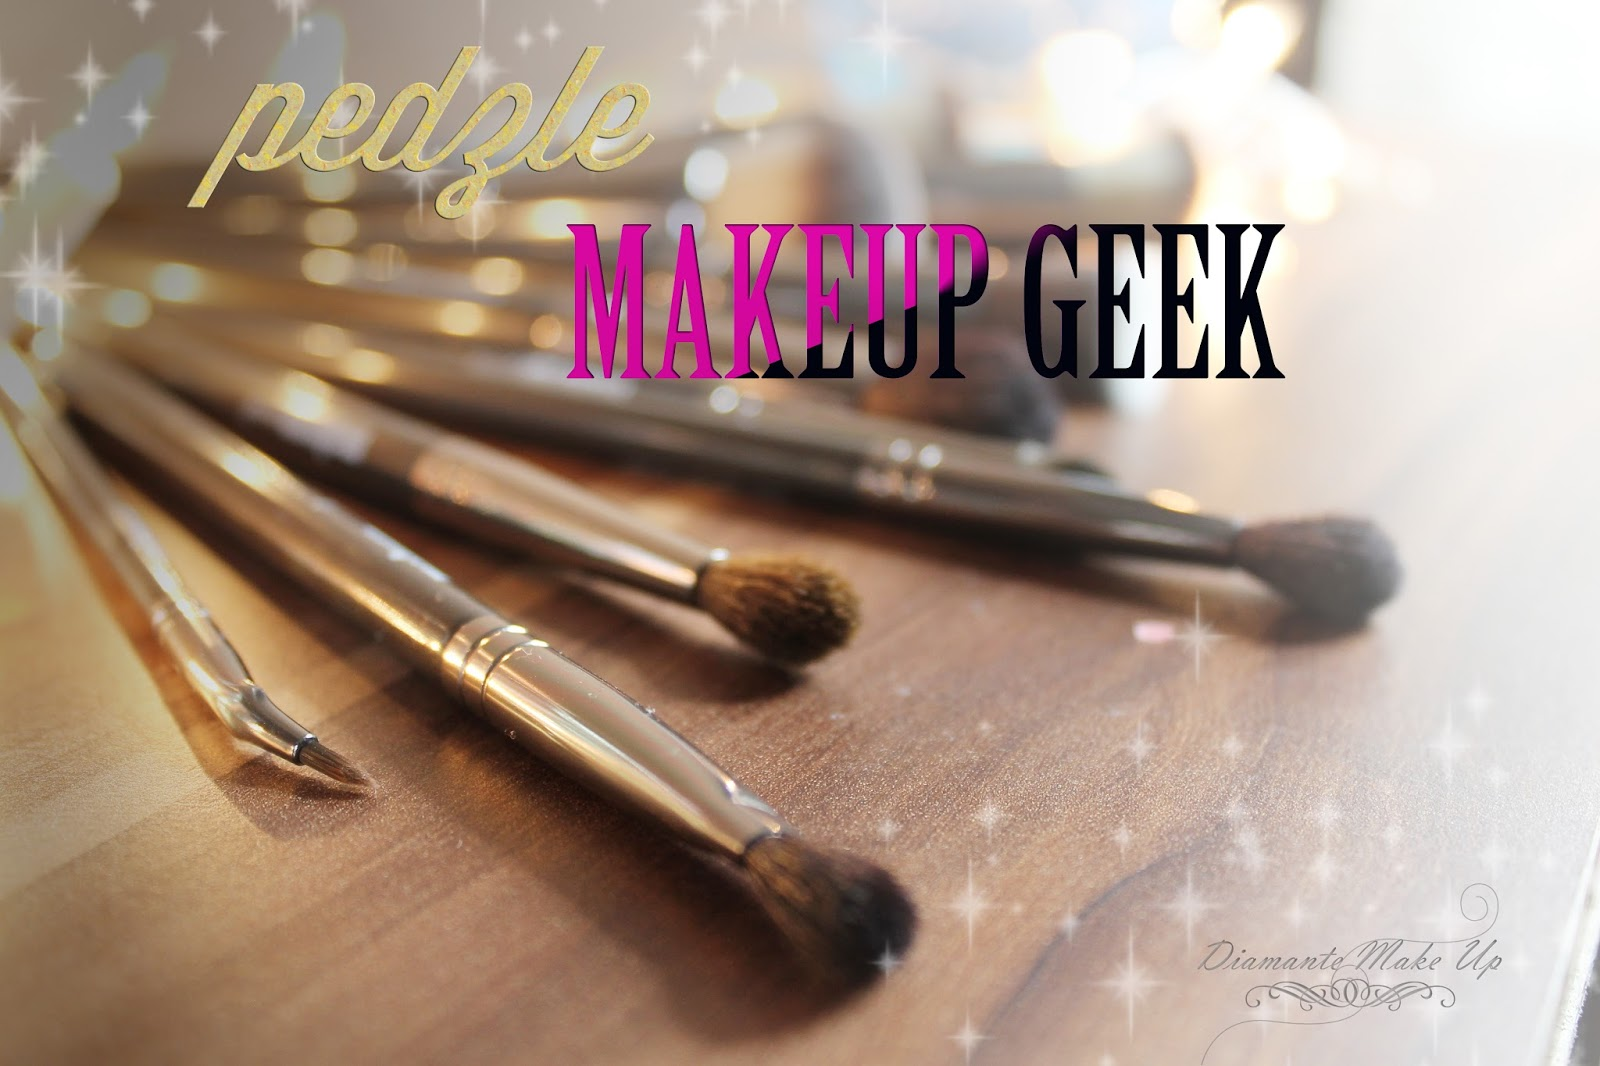 Pedzle MAKEUP GEEK